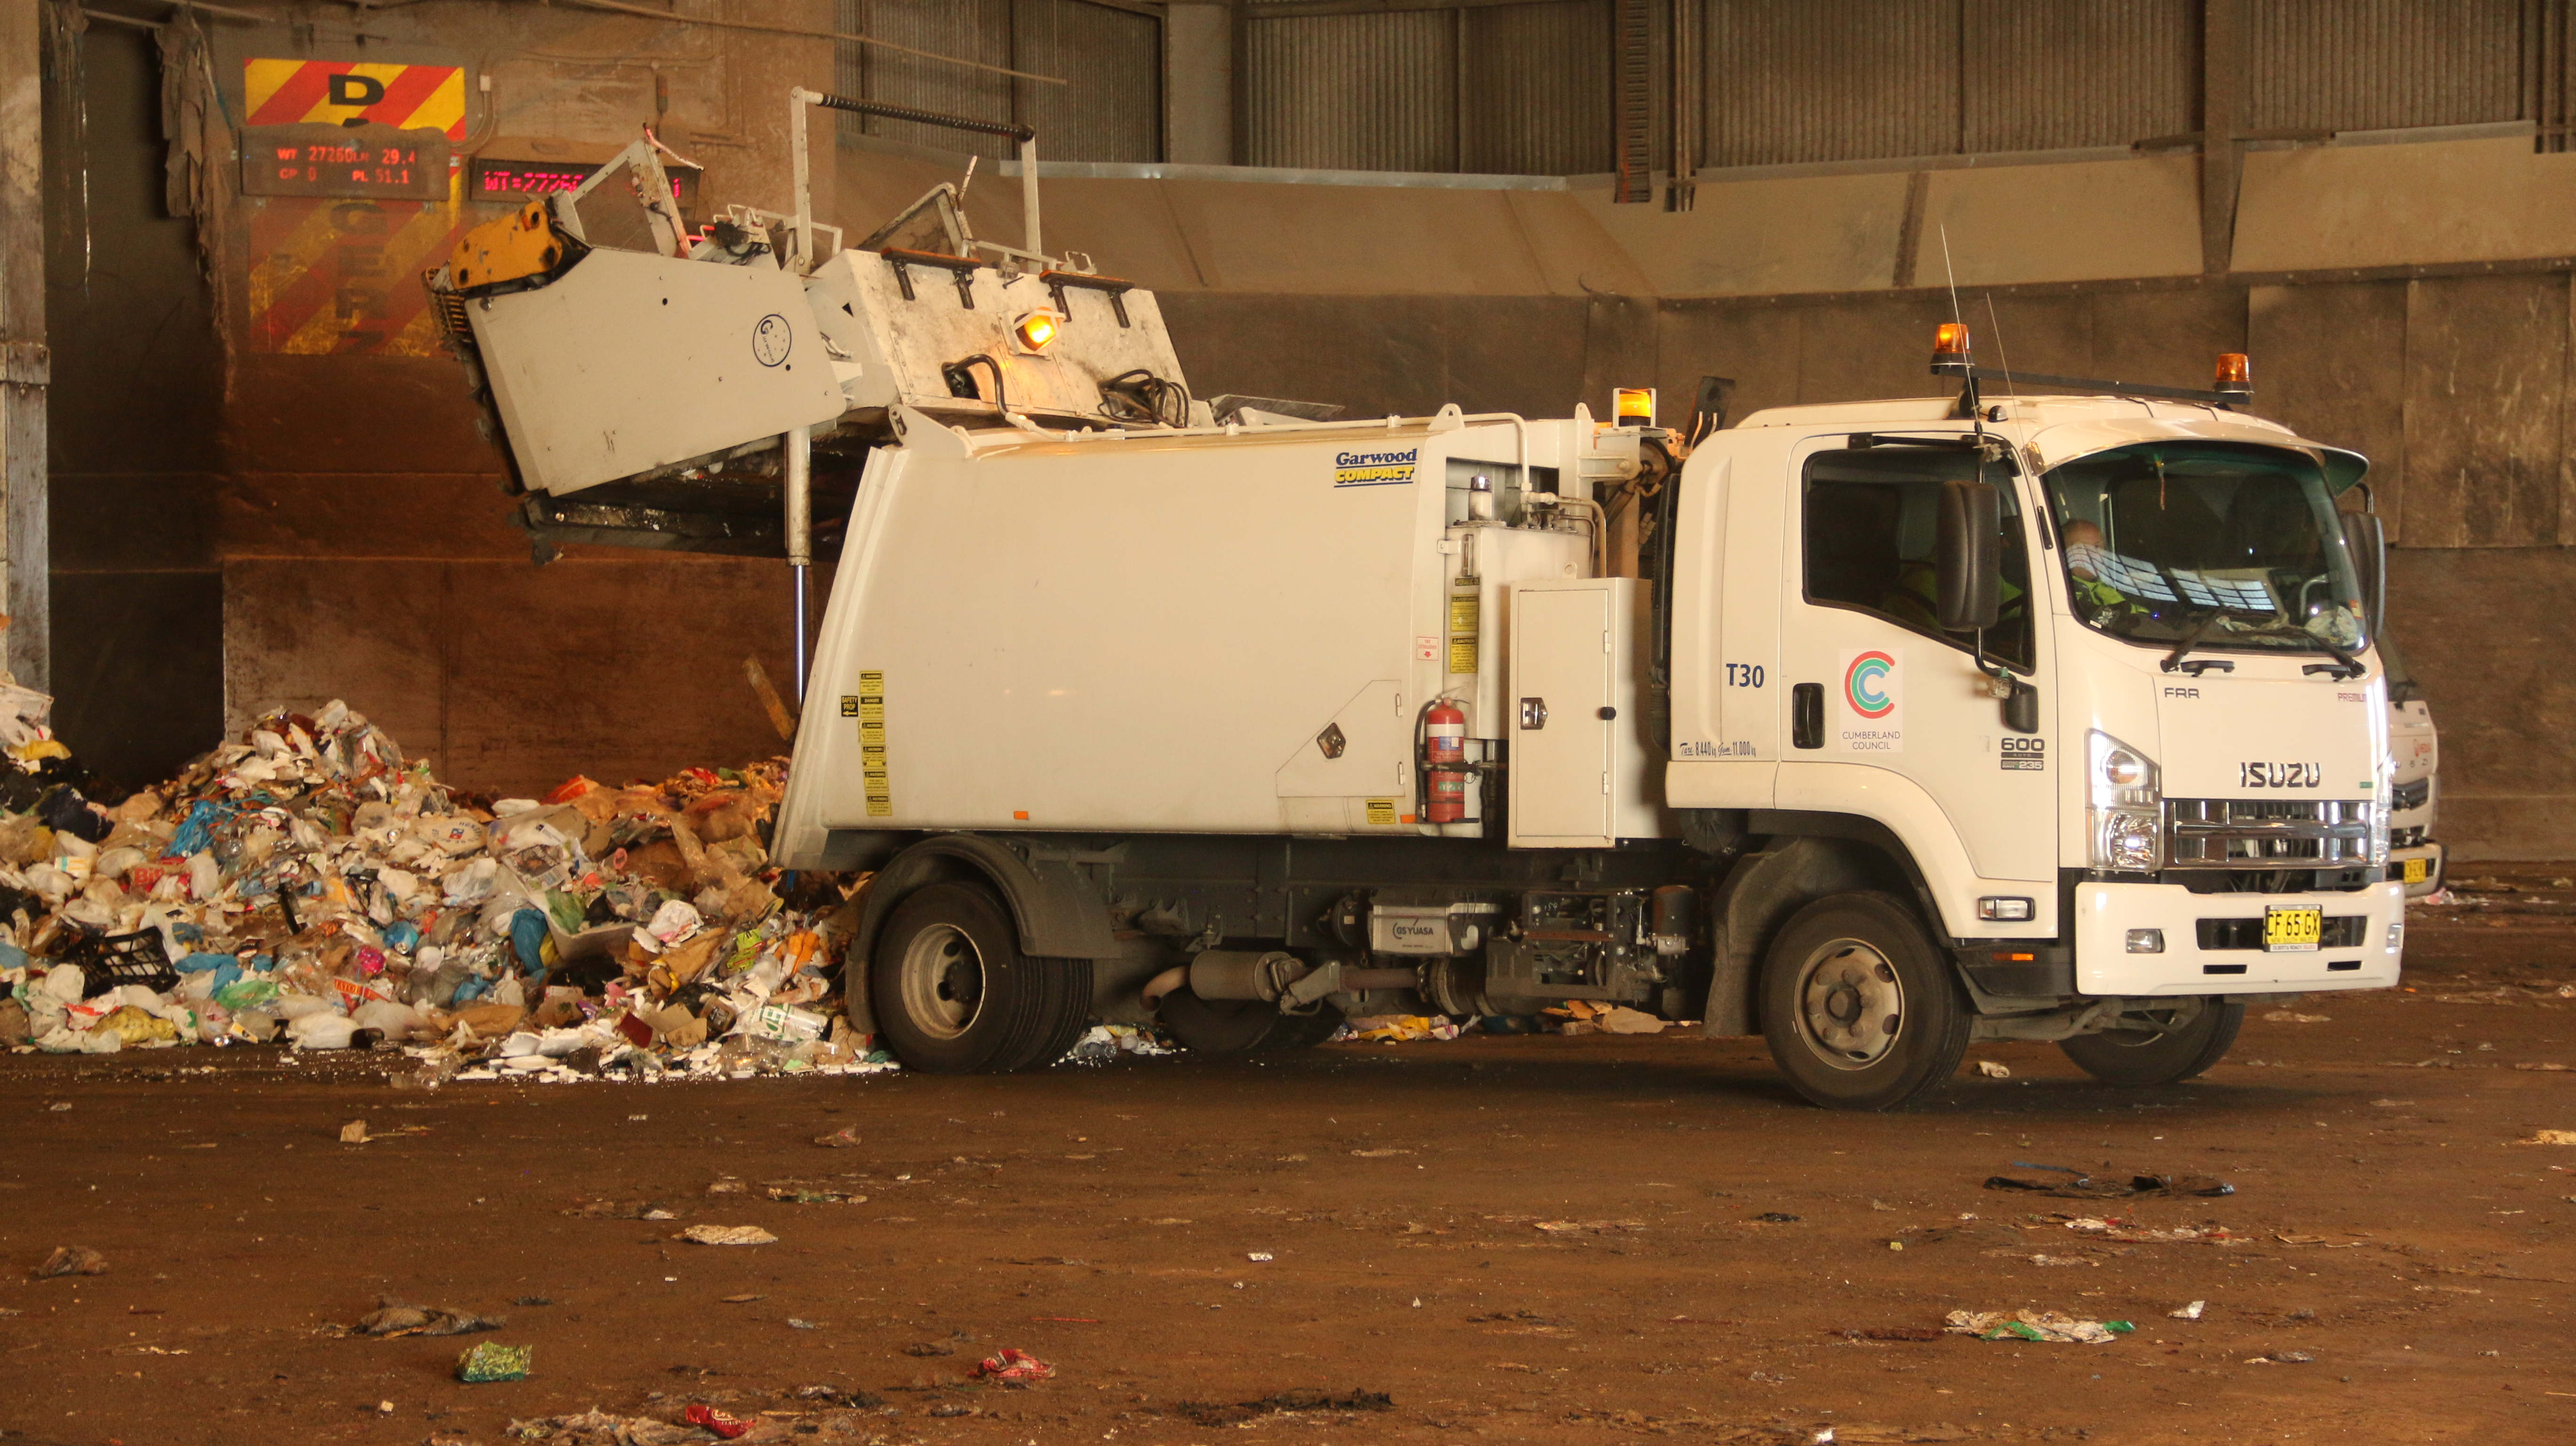 WMR visits Sydney resource recovery sites